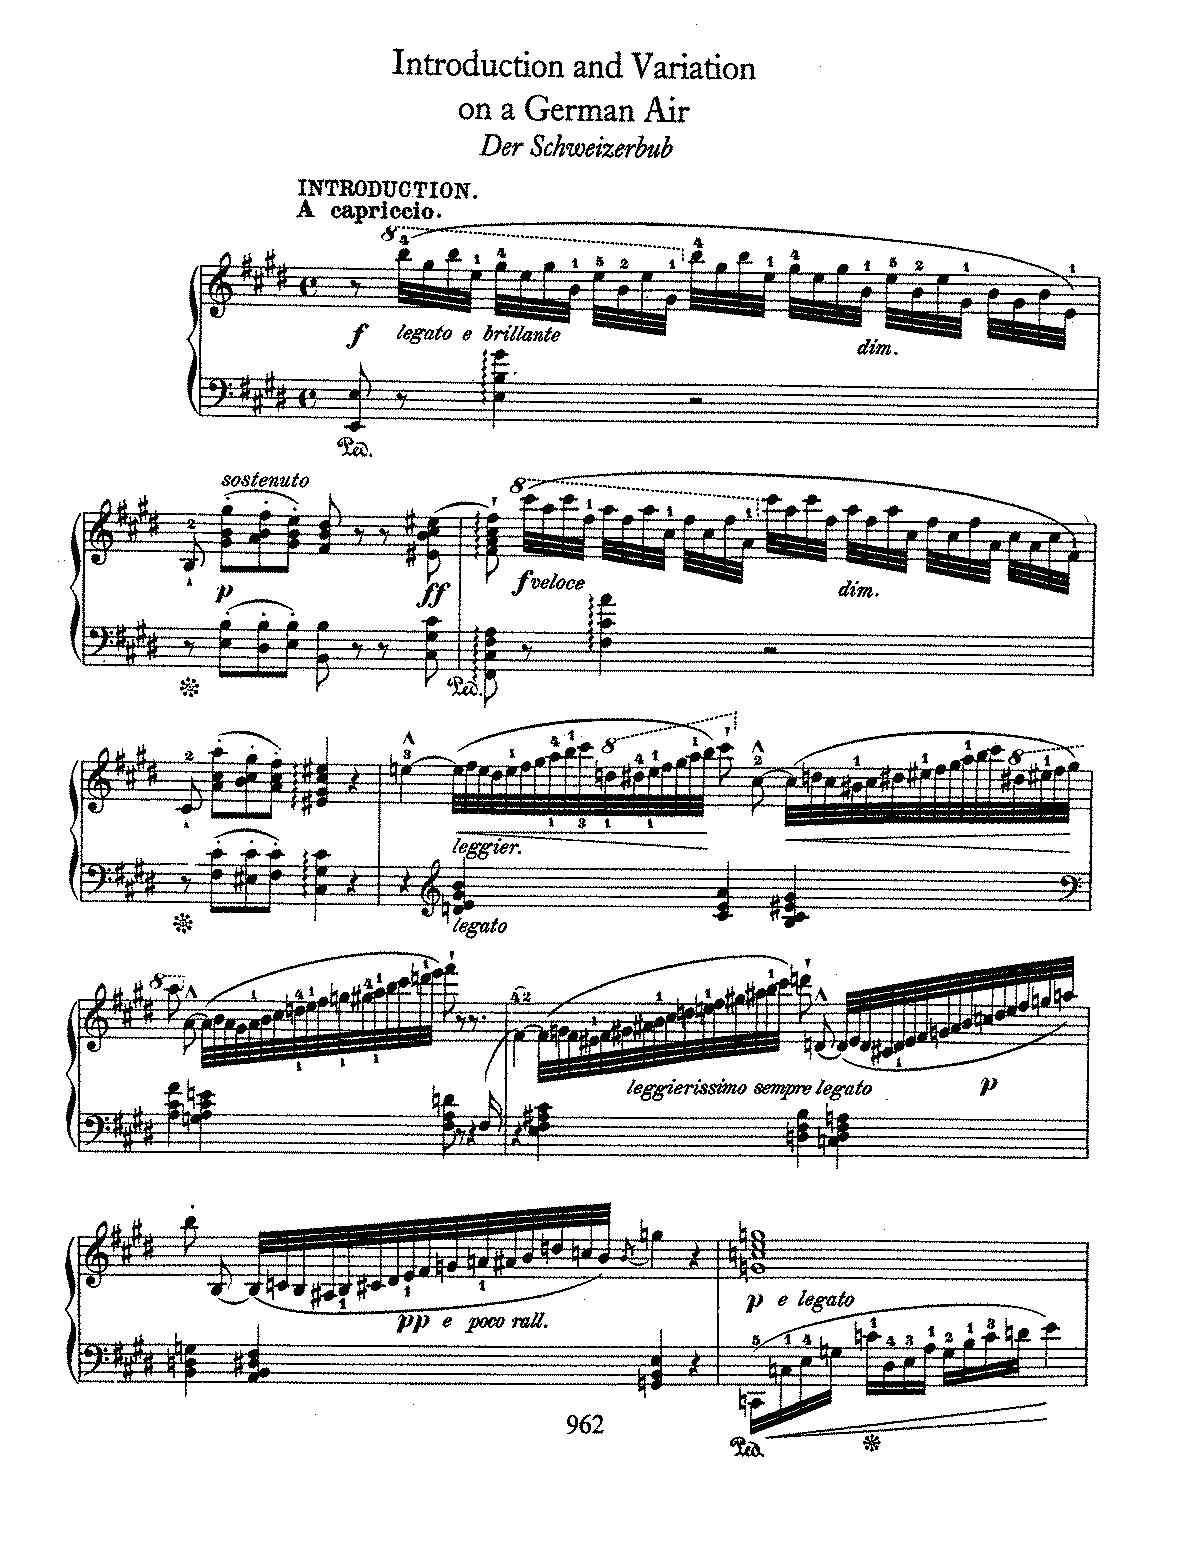 Chopin variation on a german air.pdf